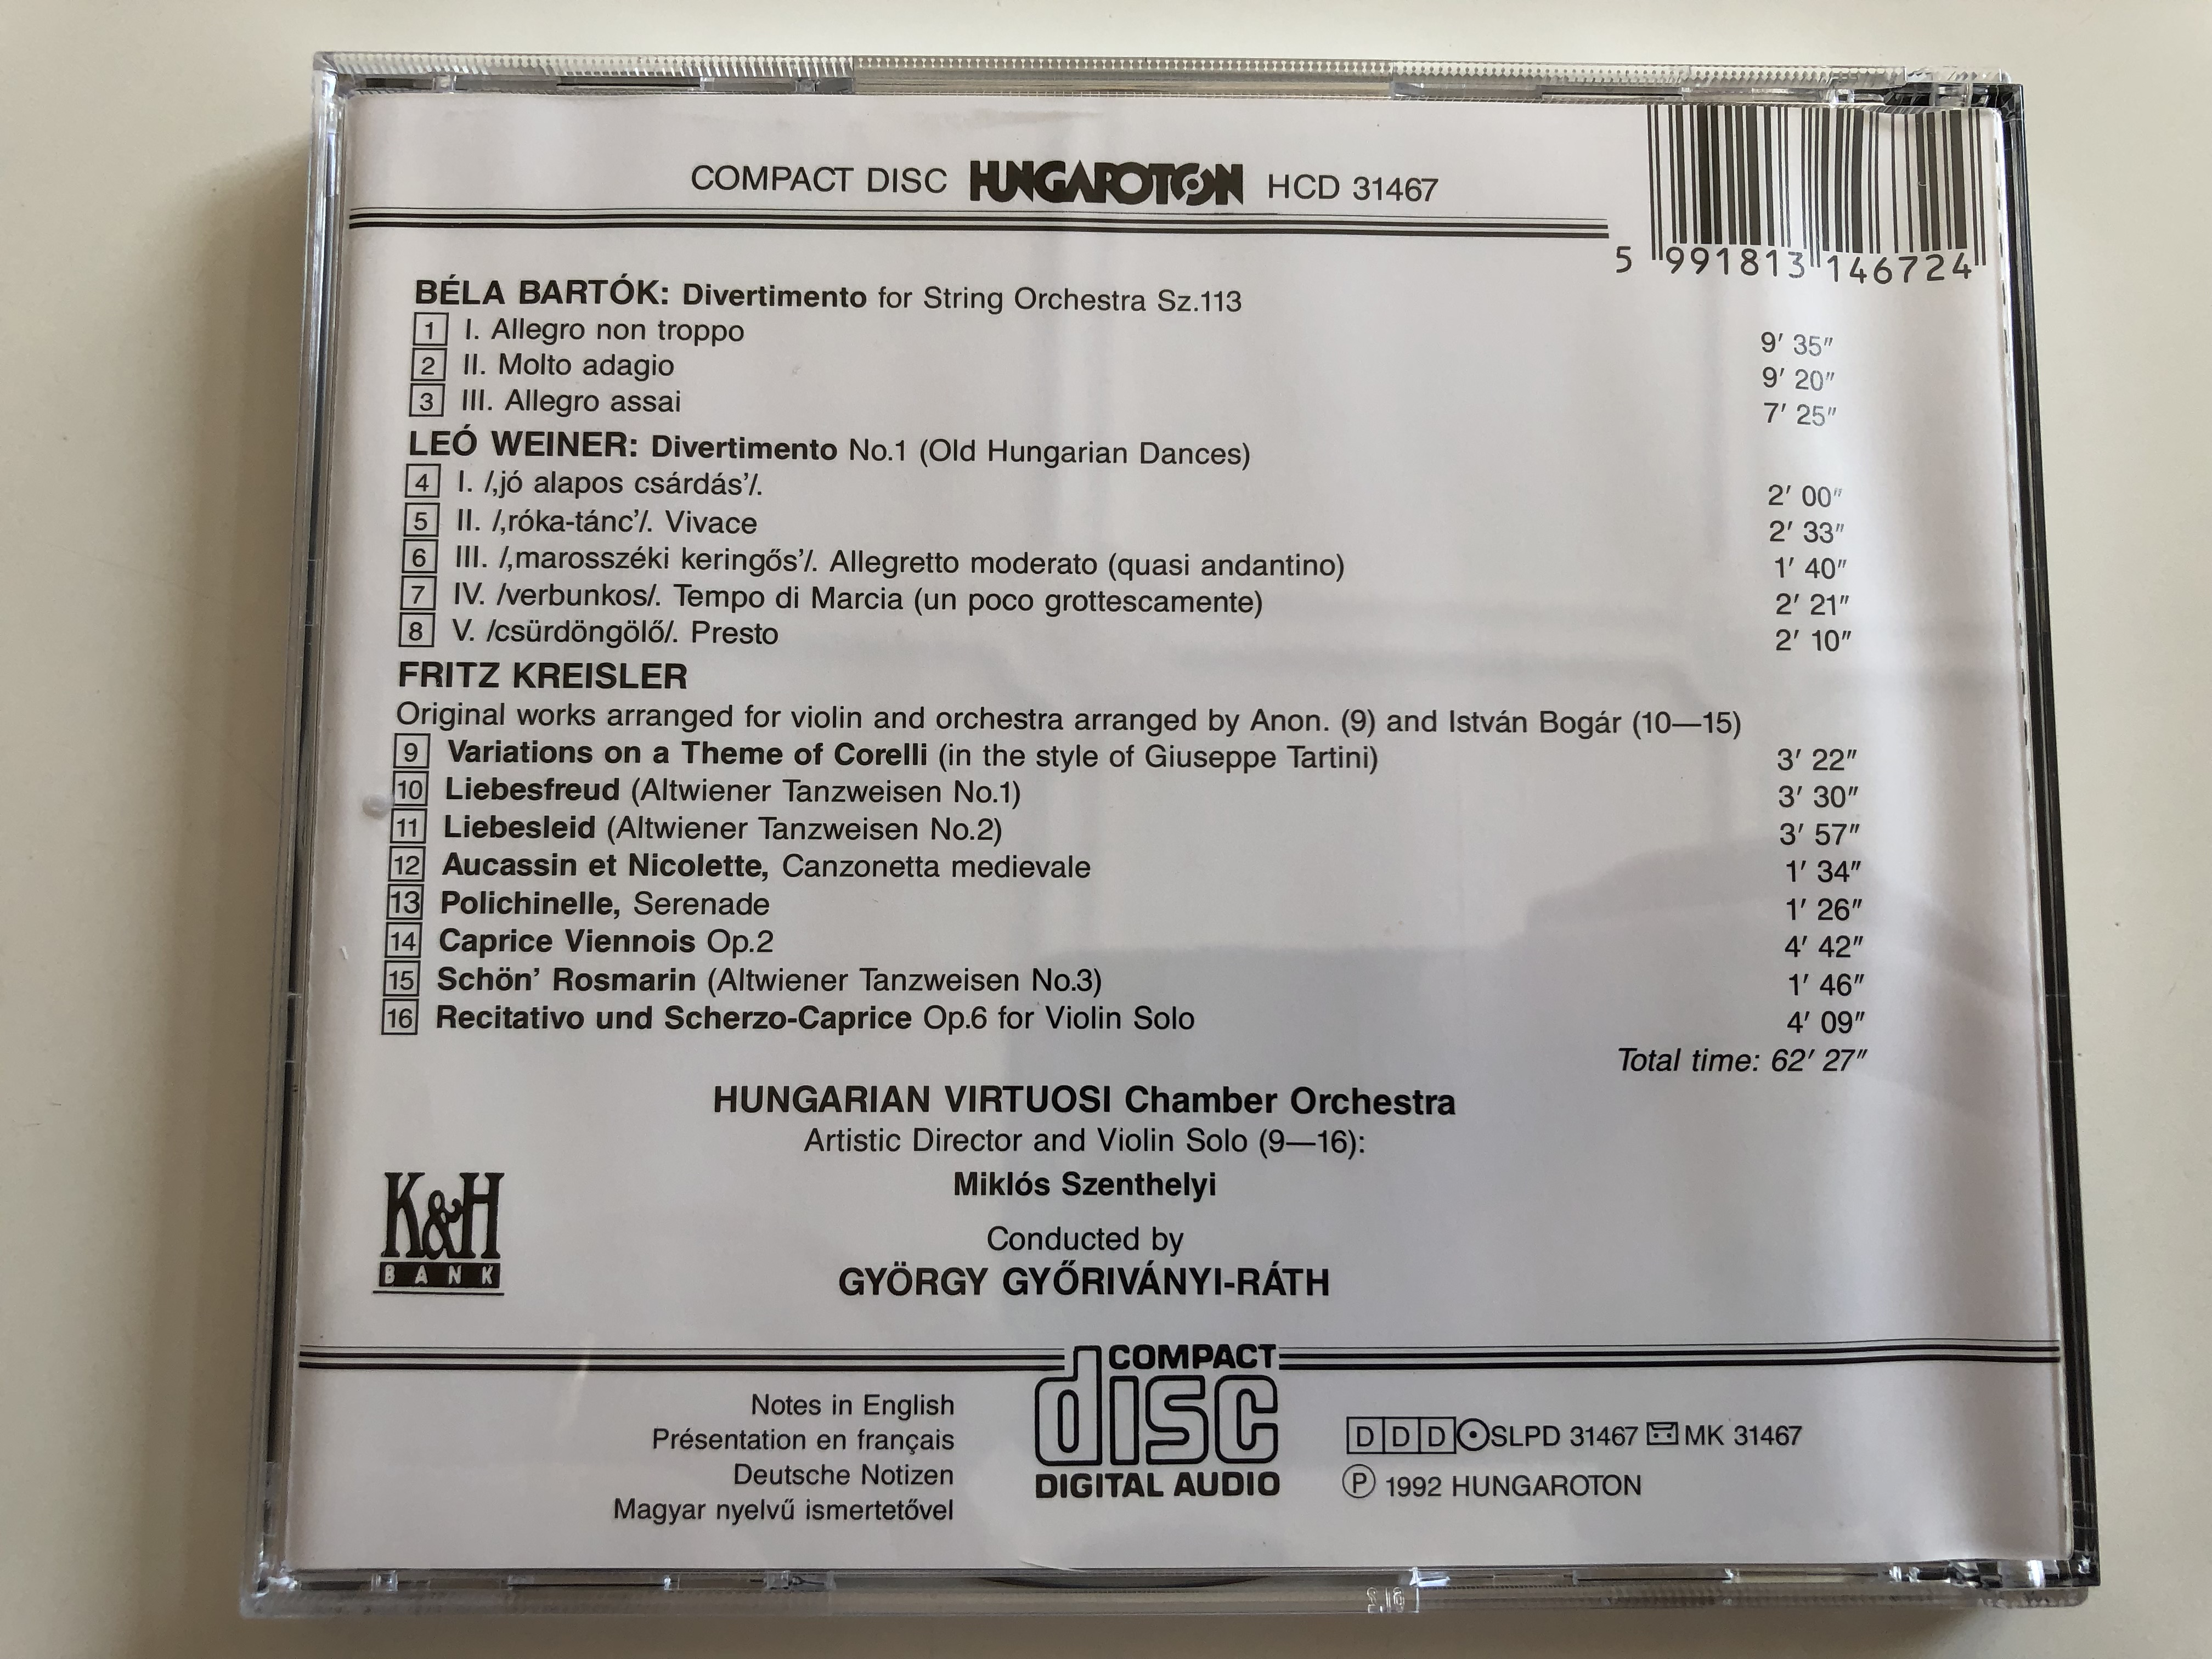 bart-k-divertimento-weiner-divertimento-no.1-kreisler-altwiener-tanzweisen-excerpts-hungarian-virtuosi-chamber-orchestra-art.-director-violin-solo-mikl-s-szenthelyi-conducted-by-gy-rgy-gy-riv-nyi-r-th-hungaroto-2097261-.jpg